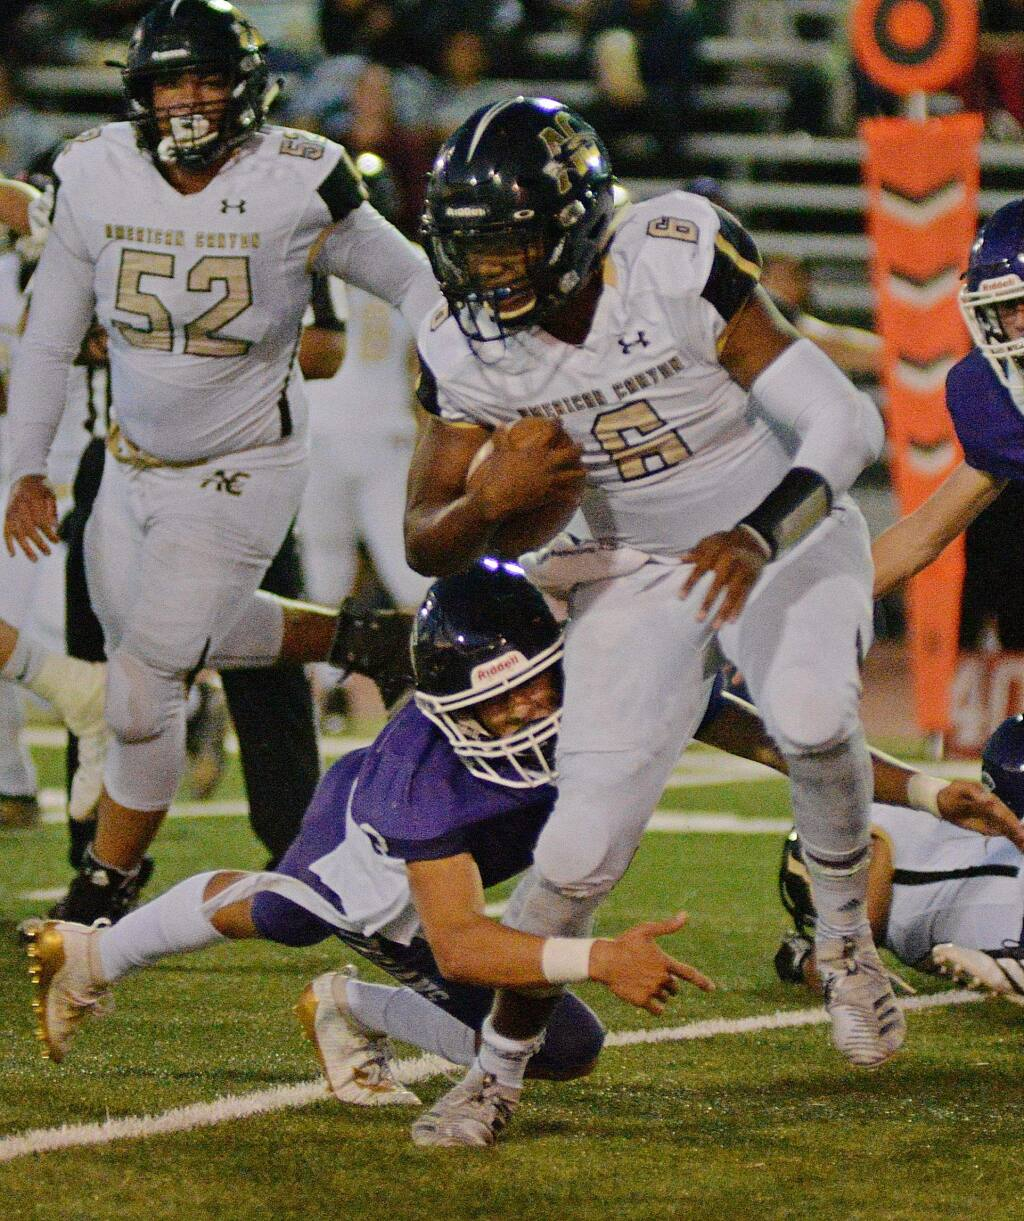 Petaluma's Jack Hartman makes an ankle tackle on American Canyon's 210-pound quarterback Vance Eshenburg in the the VVAL opening game won by American Canyon, 34-0. (Argus-Courier)